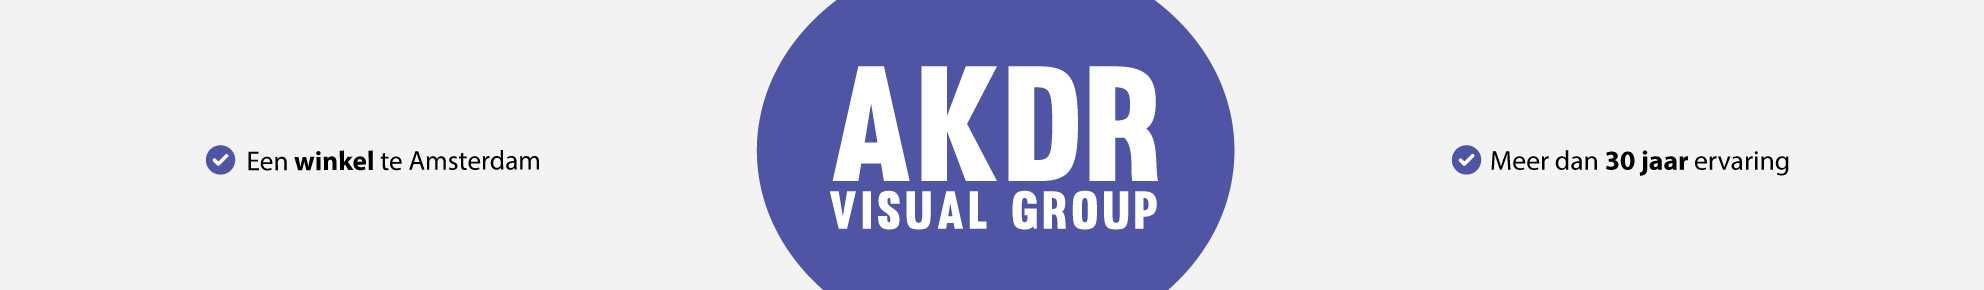 Header akdr visual group amsterdam 1